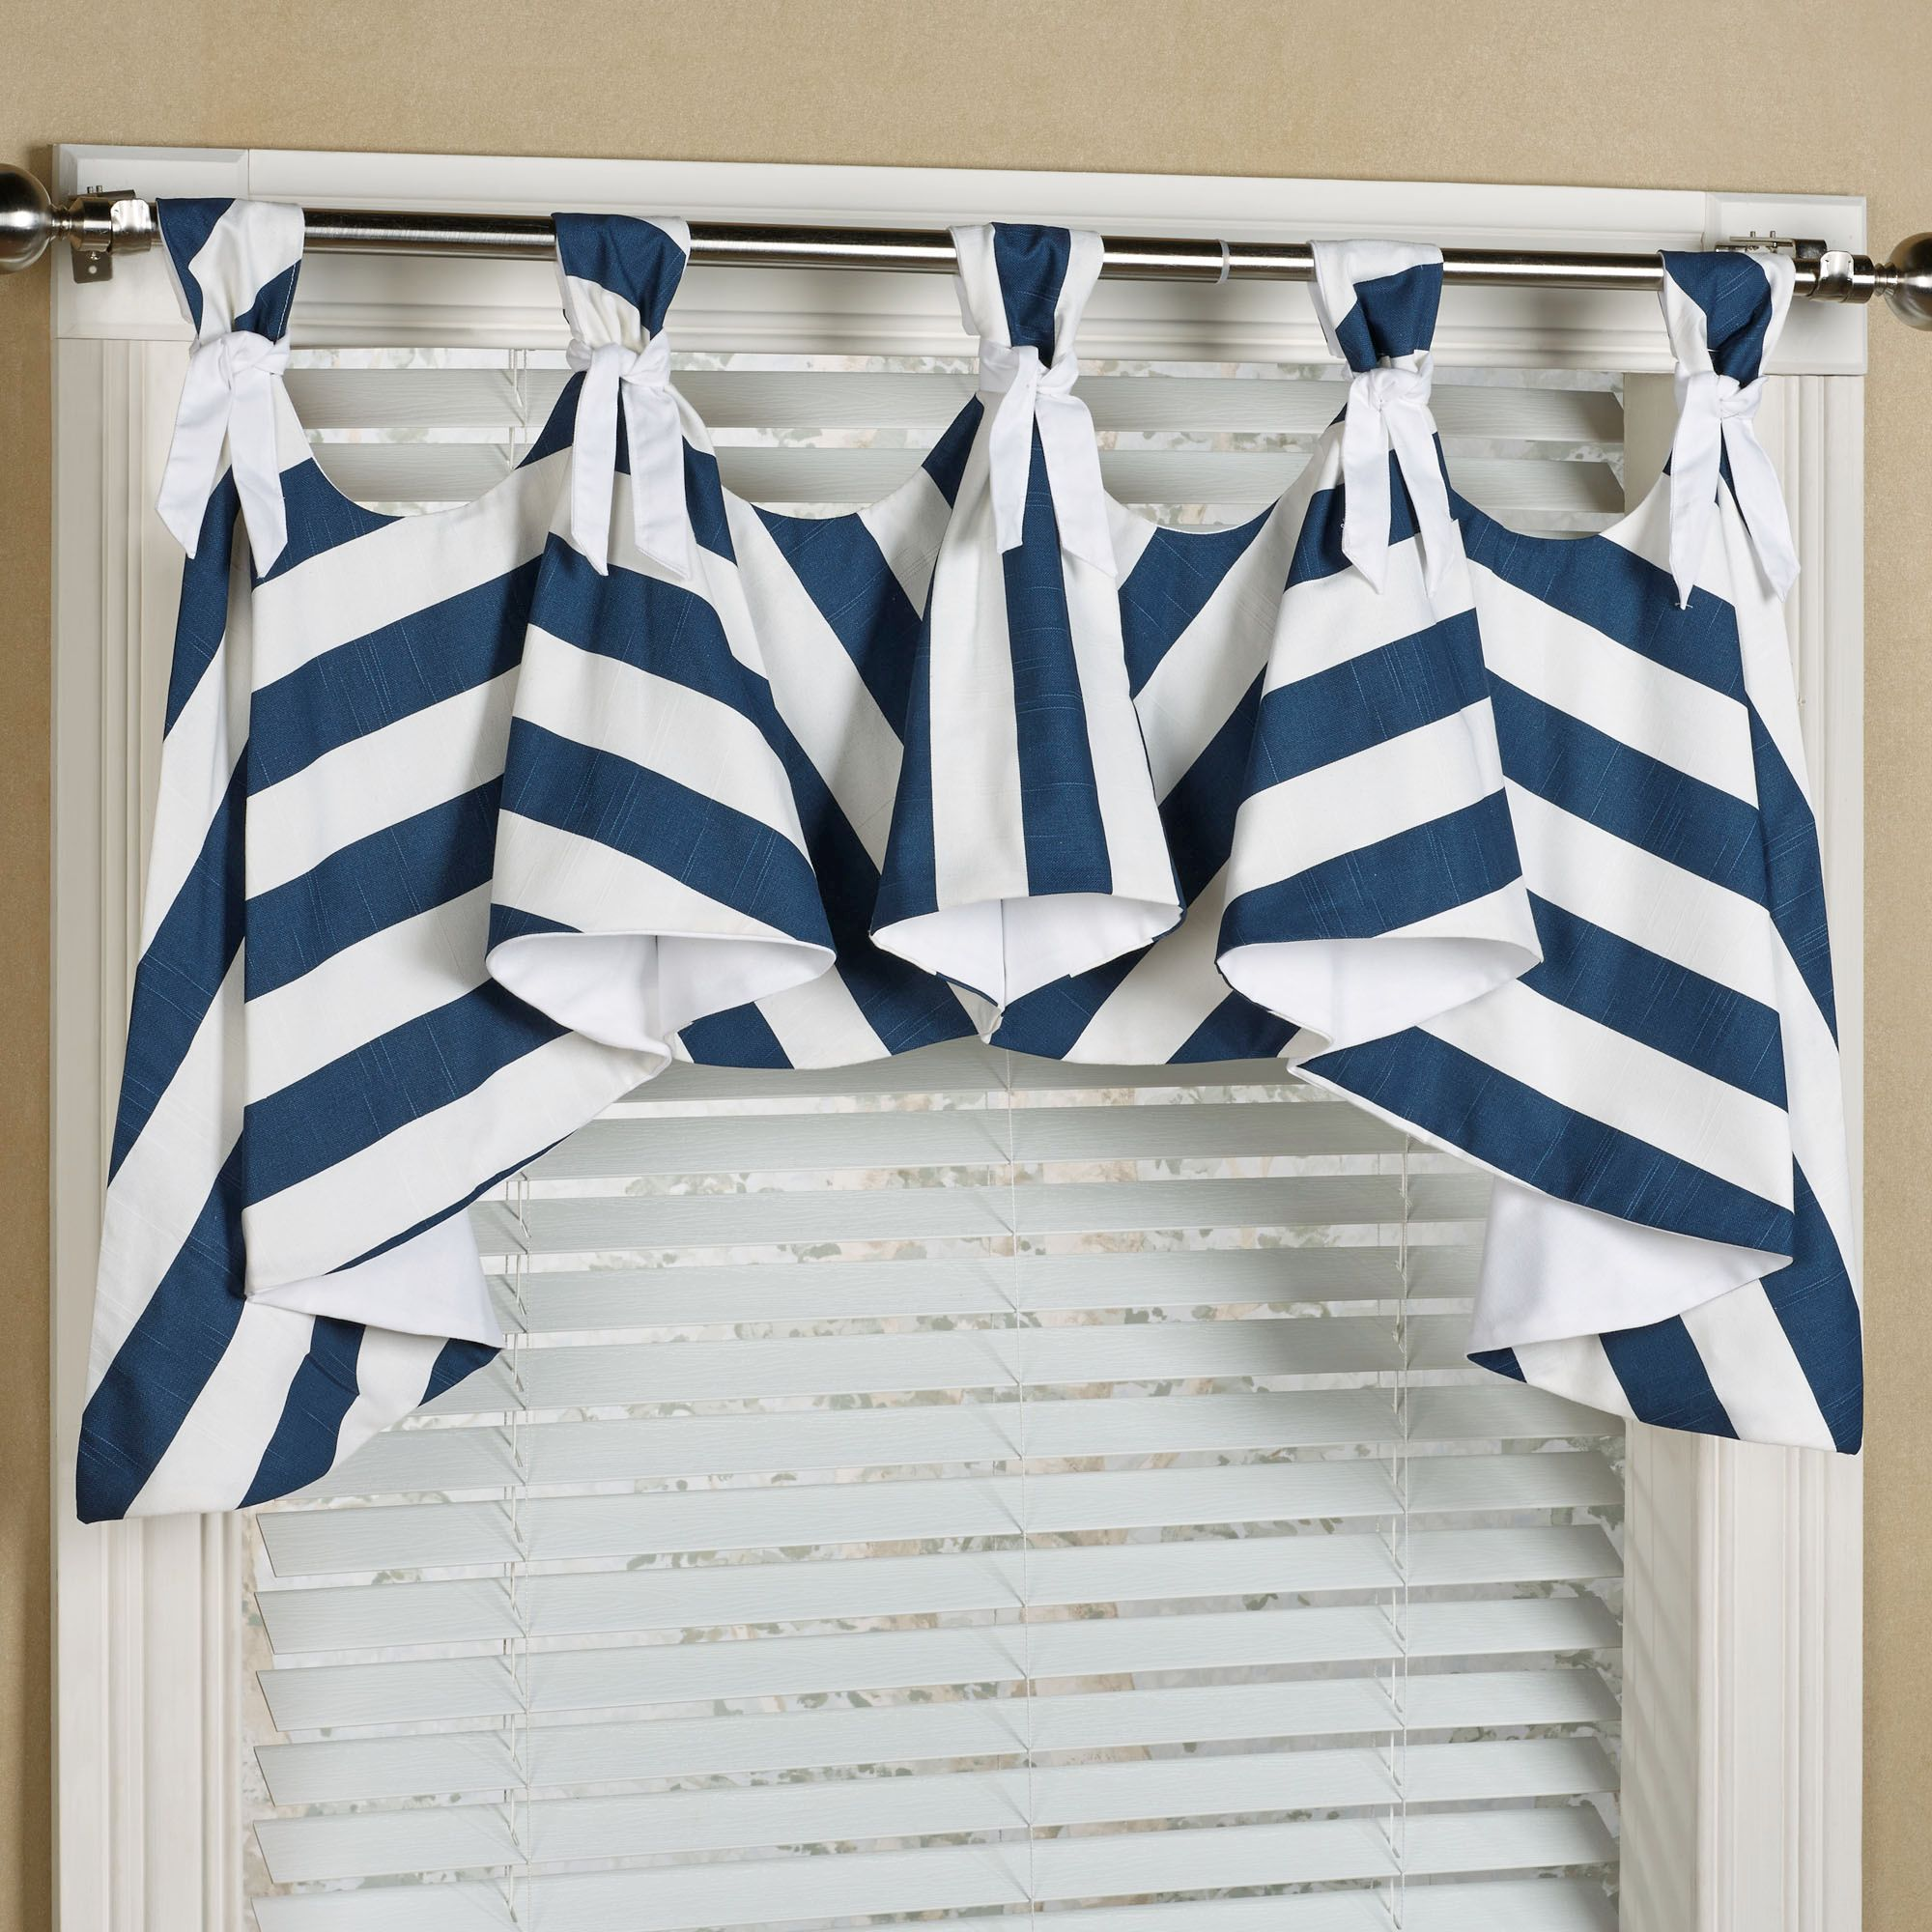 Seaboard Stripe Nautical Austrian Window Valance Window Valance